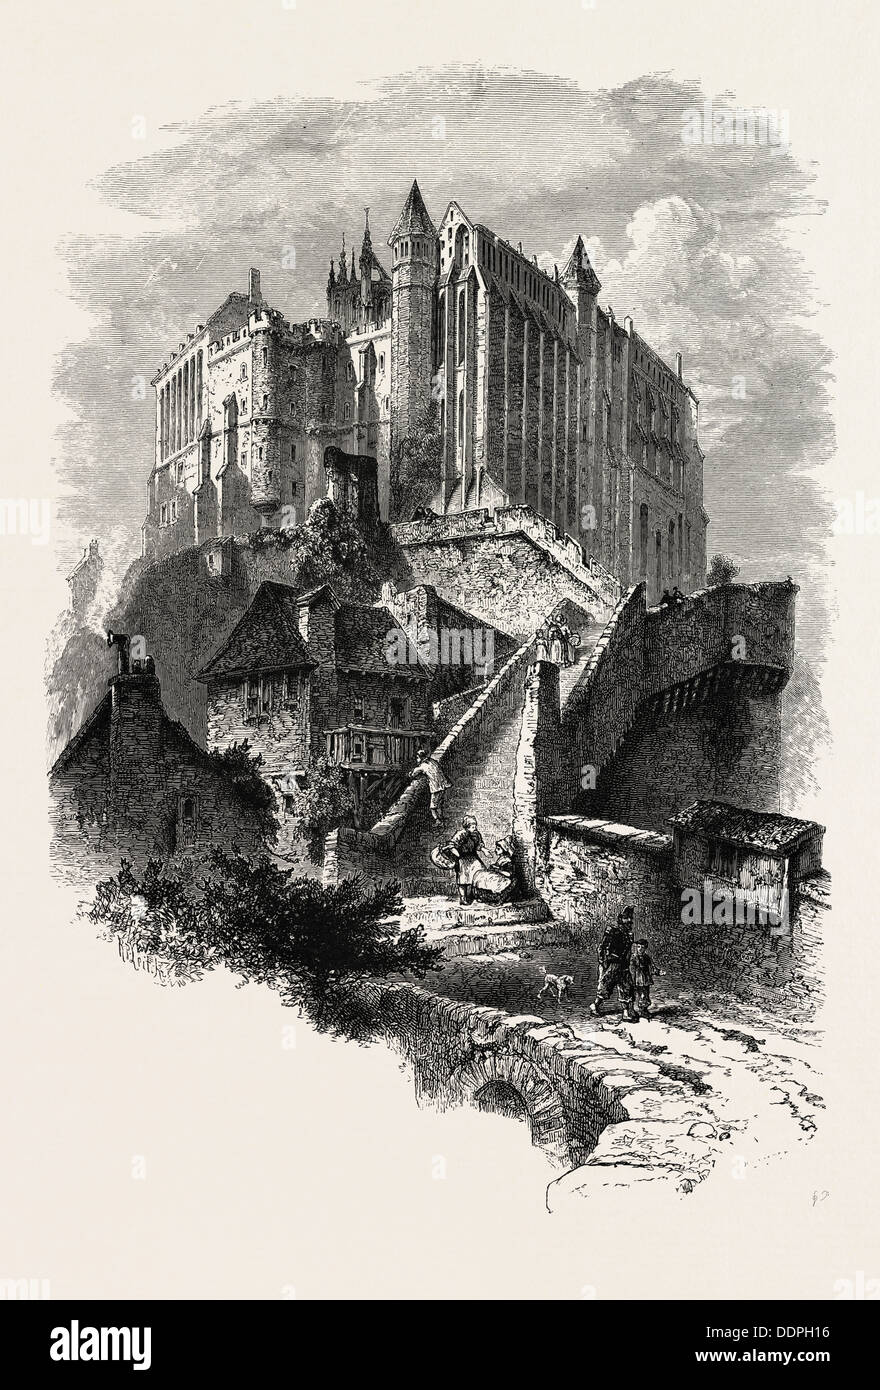 Mont St. Michel, NORMANDY, FRANCE, 19th century engraving;engraved image;history; illustrative technique; engravement; - Stock Image